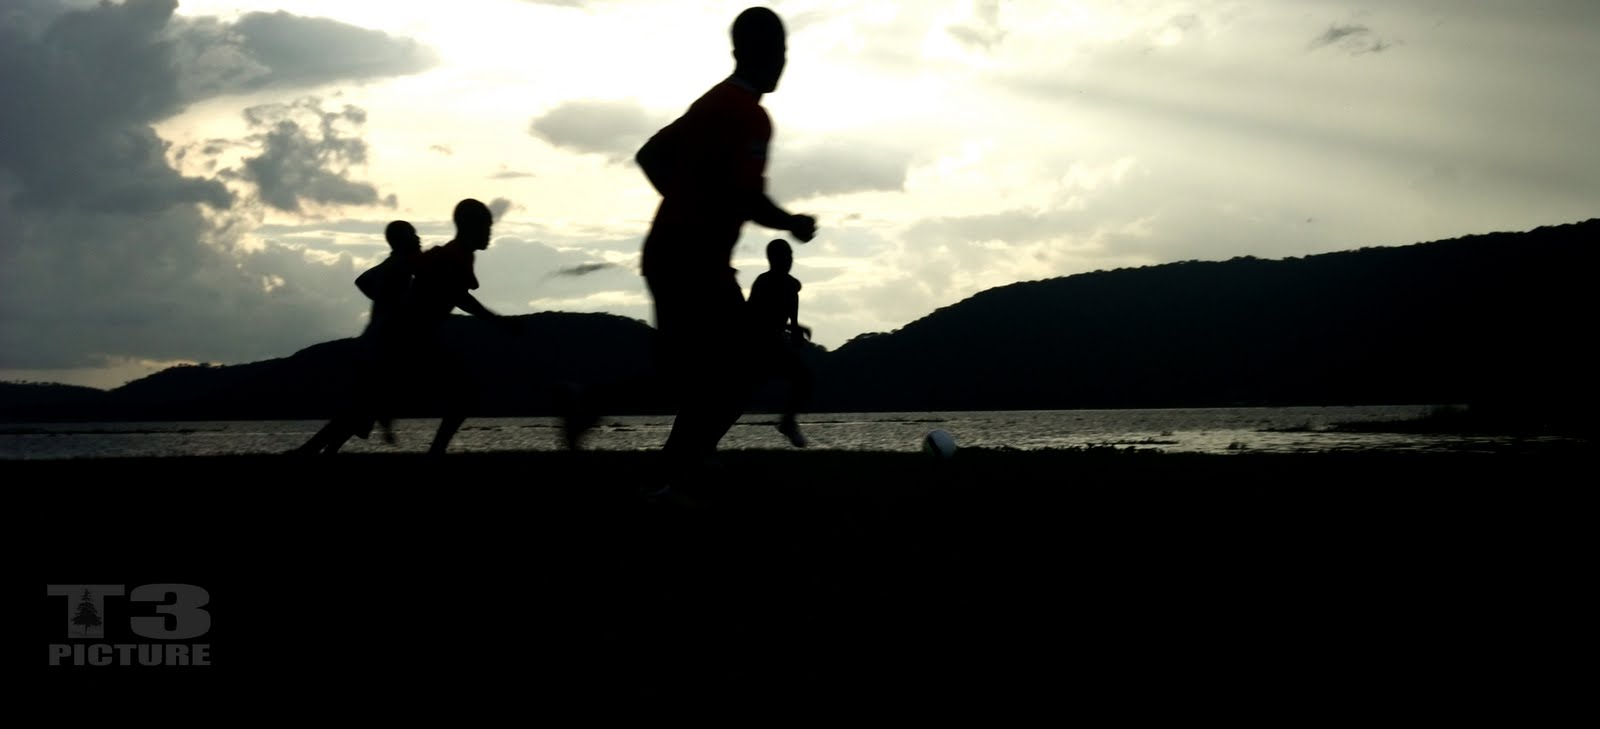 Sunset and People | tnashPHOTOGRAPHY: http://tnashphotography.blogspot.com/2012/01/sunset-and-people.html#!